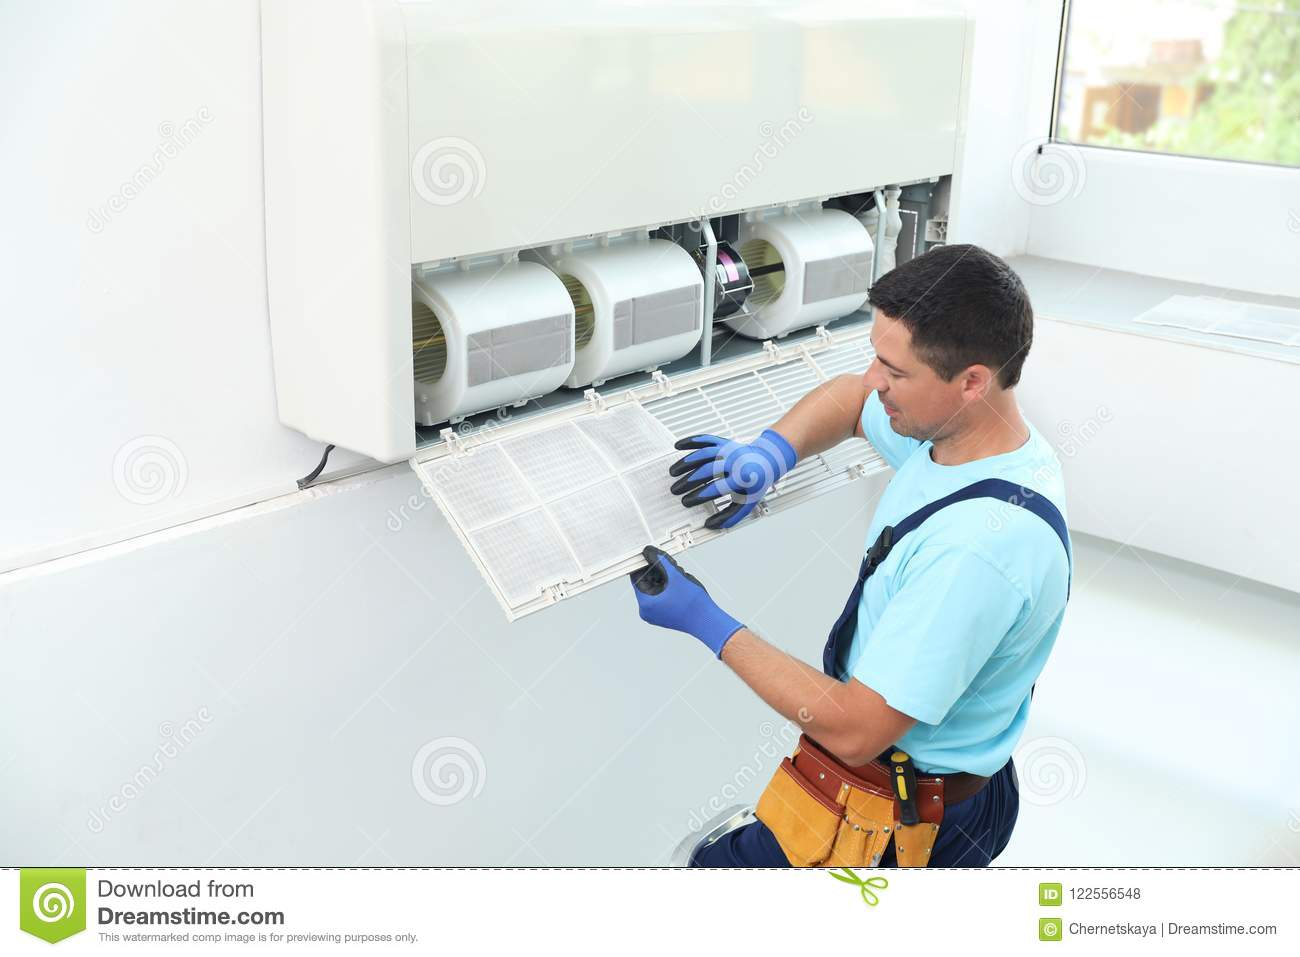 Male Technician Cleaning Air Conditioner Stock Photo - Image